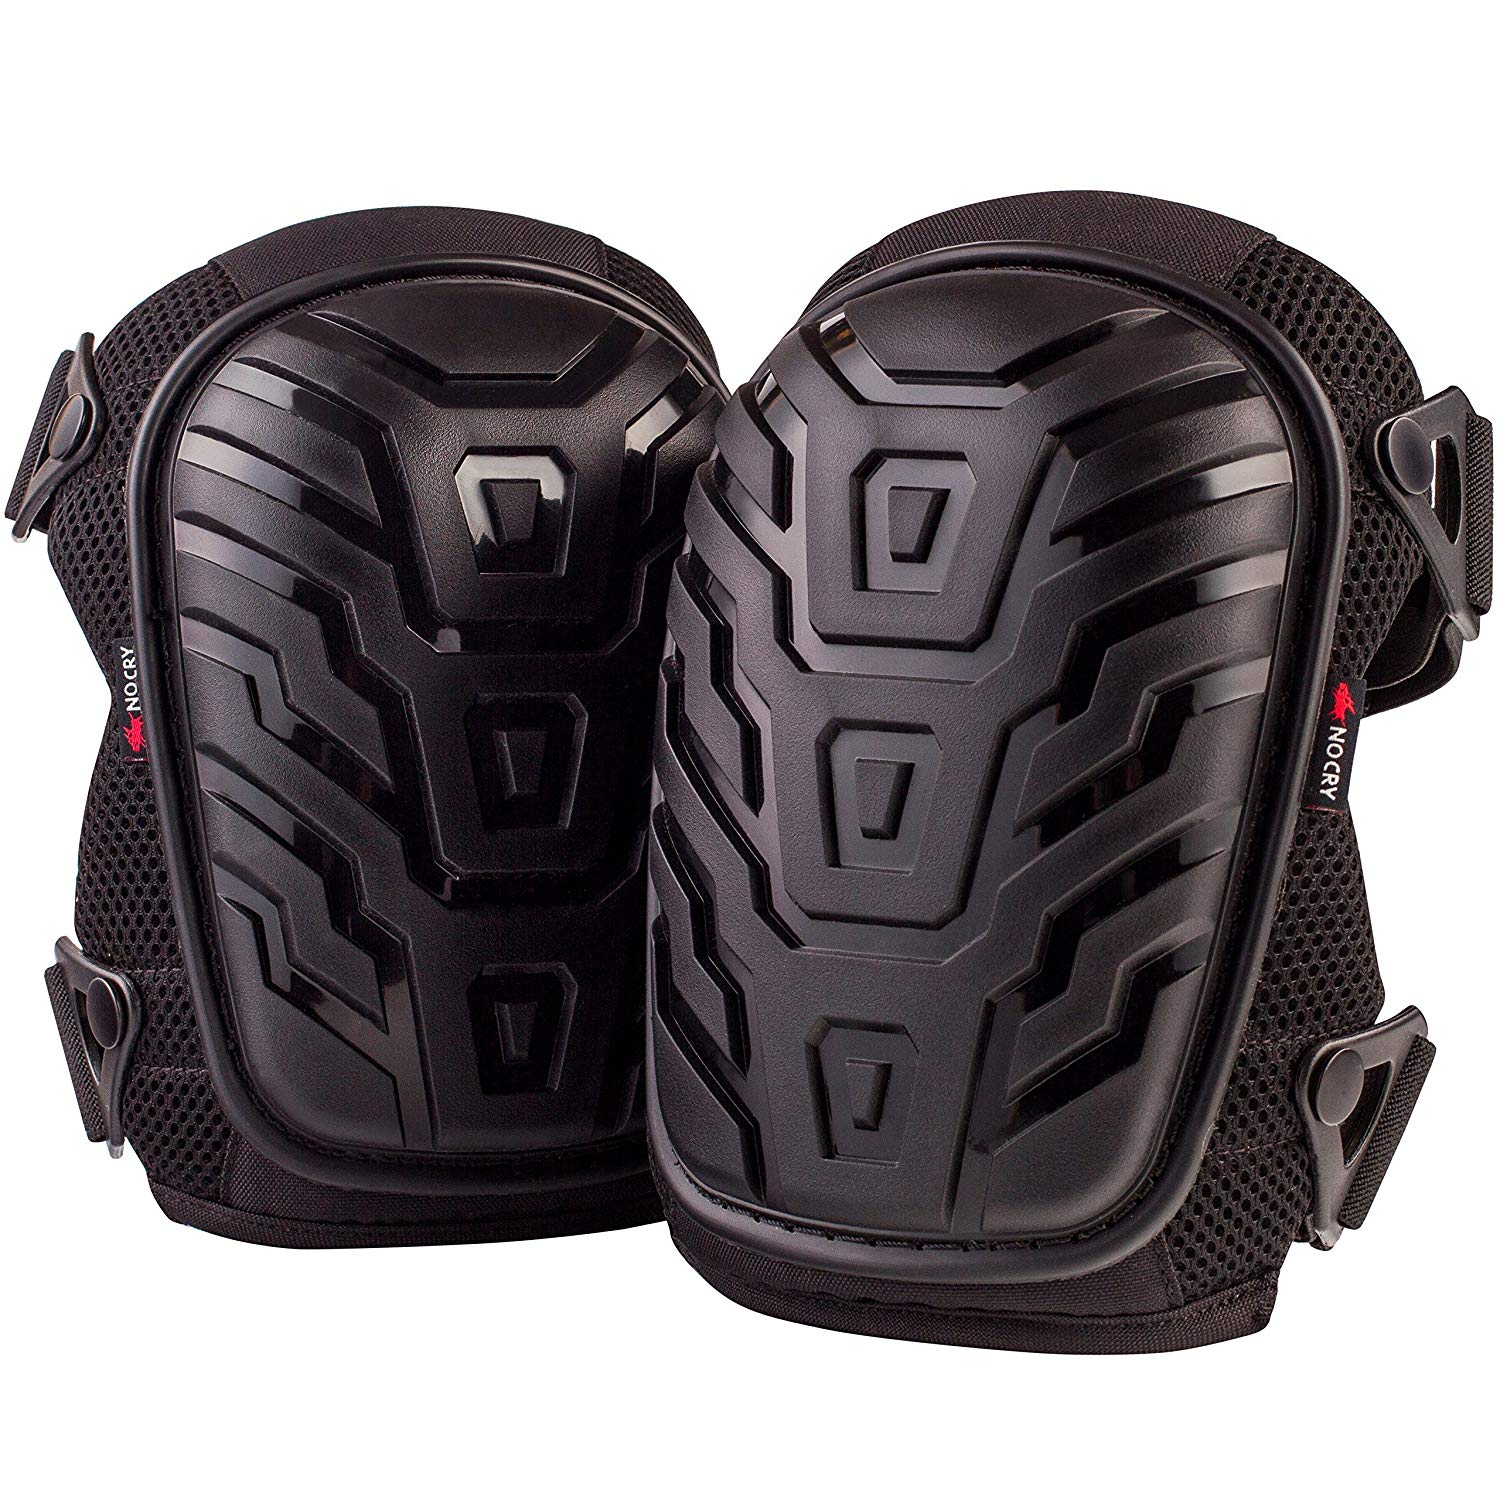 Essential Caving Knee Pads That Everyone Should Know